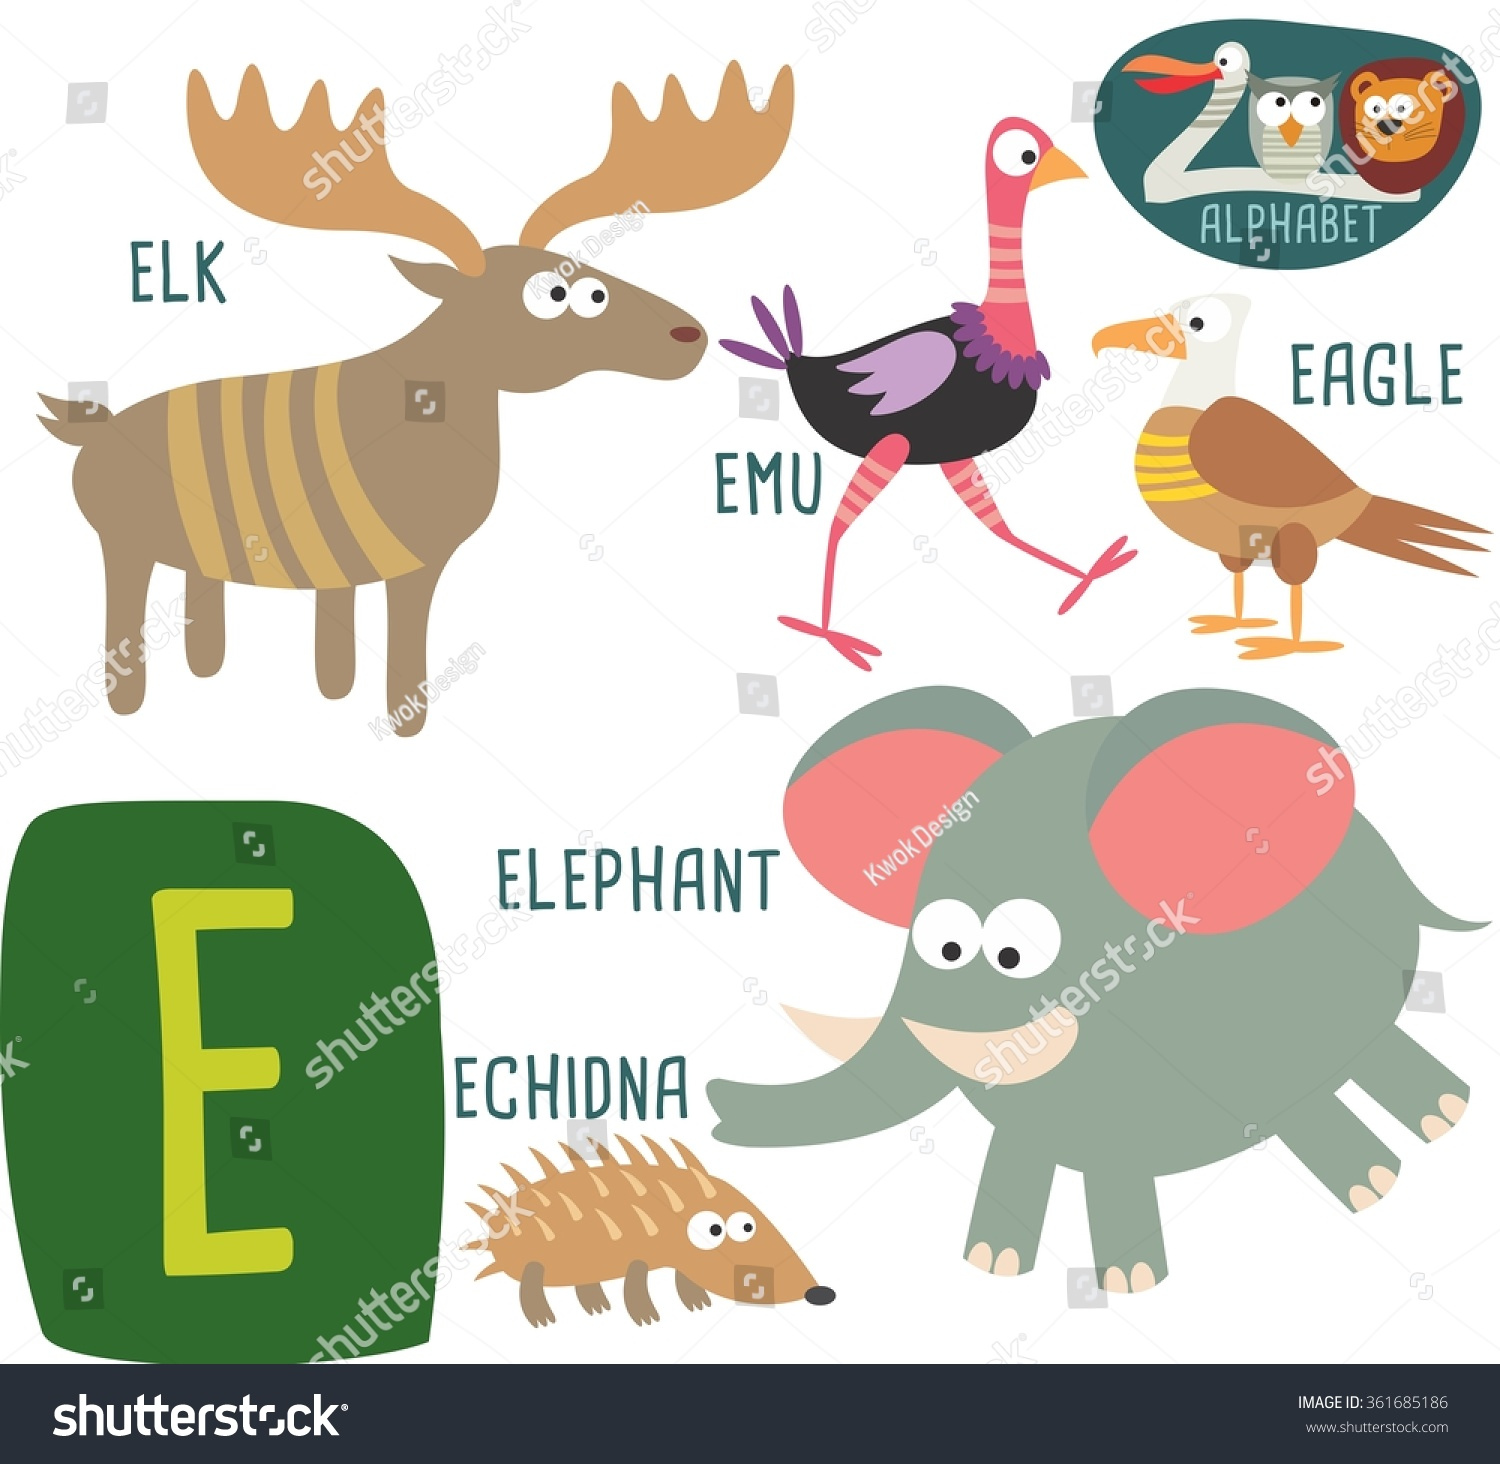 Royalty free cute zoo alphabet in vector e letter 361685186 stock cute zoo alphabet in vector e letter for elk emu eagle elephant echidna funny cartoon animals alphabet design in a colorful style stock photo thecheapjerseys Gallery